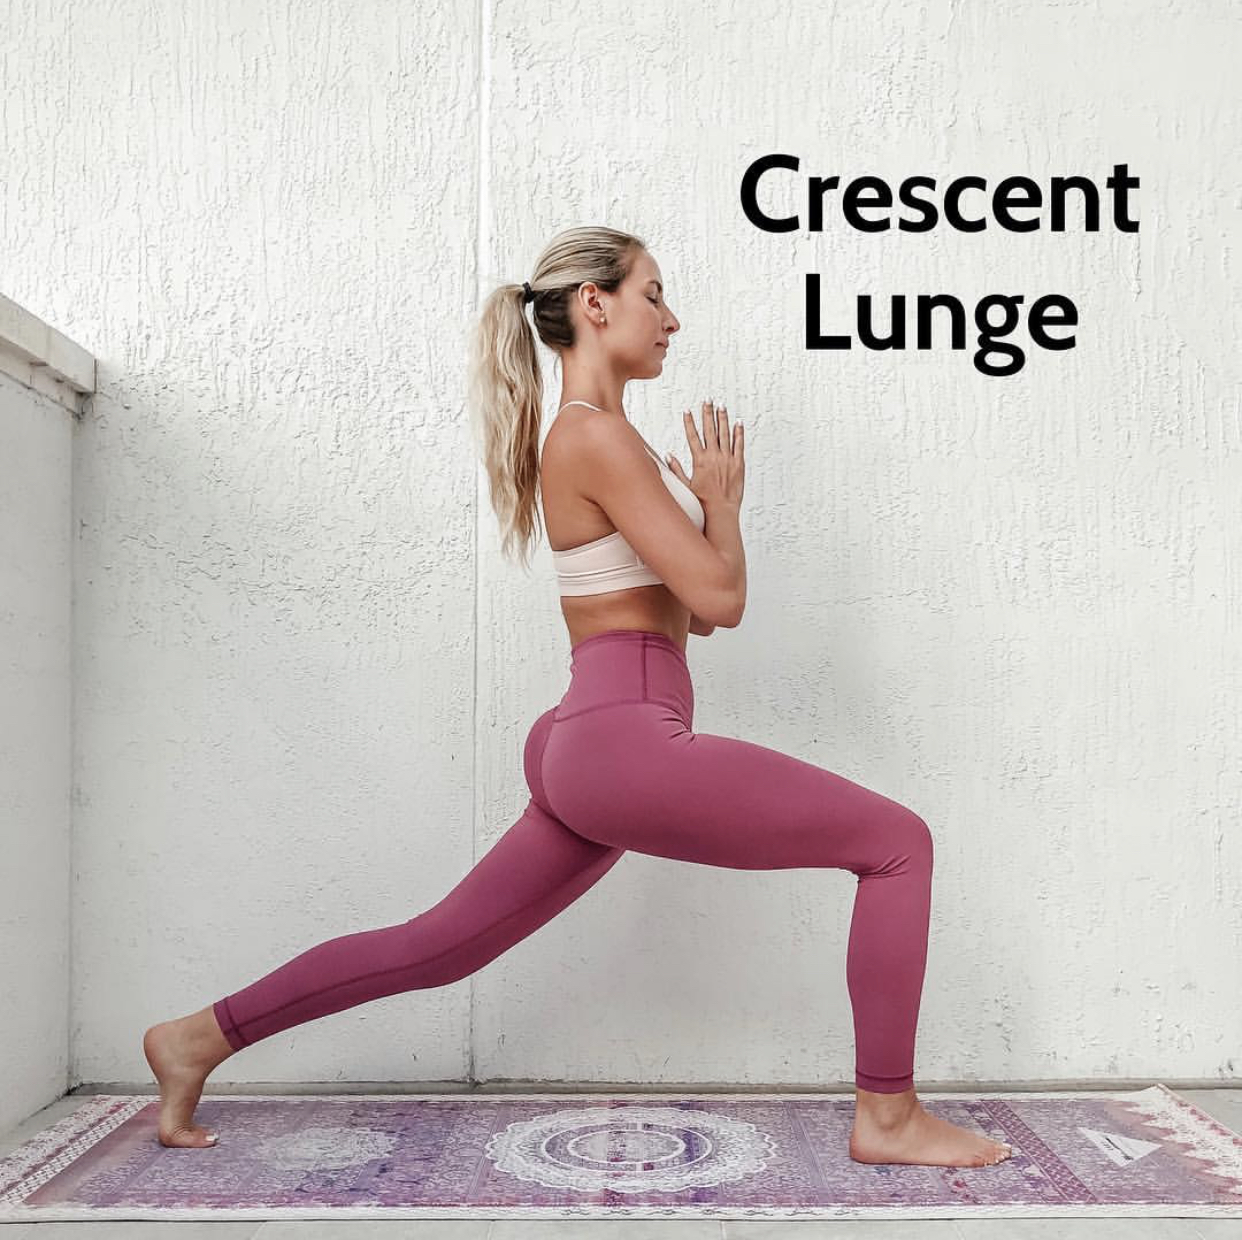 Crescent Lunge x 1 minute on each leg. Make sure to press into the ball of the back foot and gently pulse the front knee for a deeper stretch.